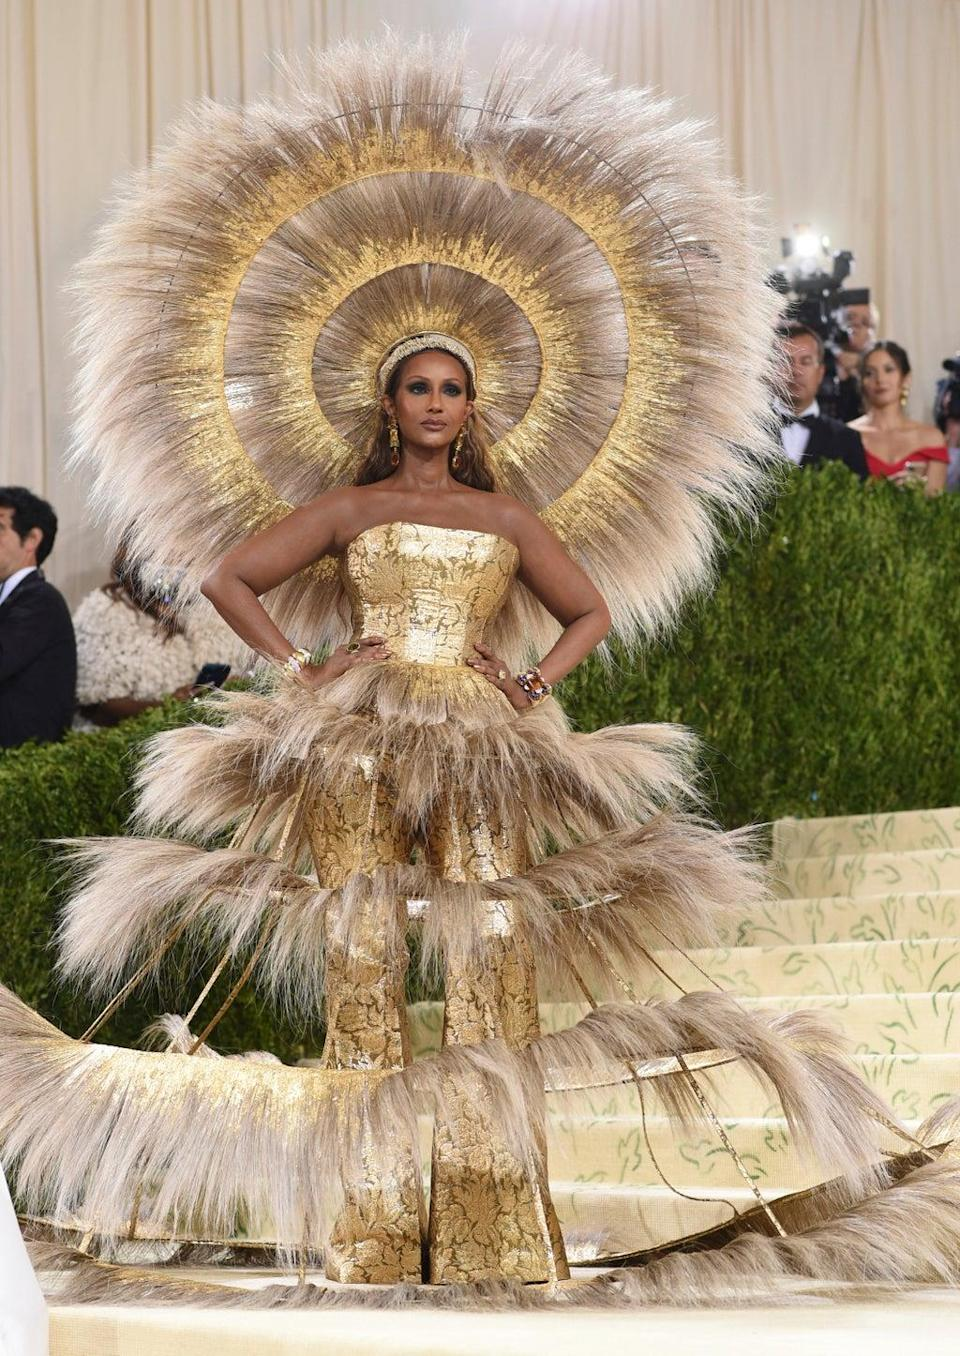 Iman wore an elaborate feather outfit at the Met Gala (Evan Agostini/Invision/AP) (AP)